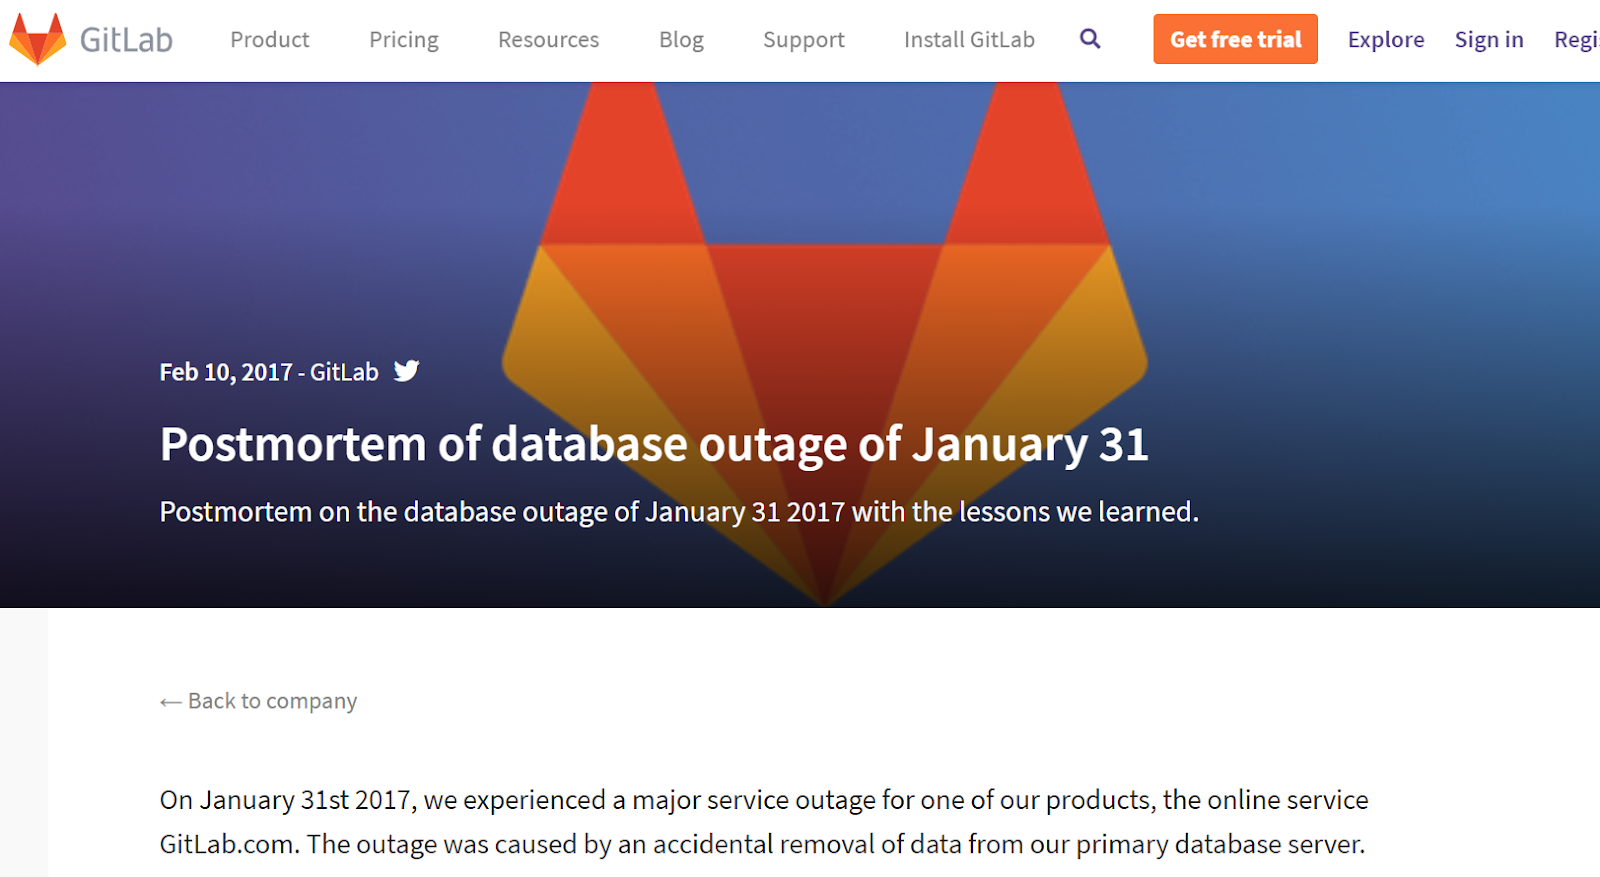 gitLab postmortem of database outage